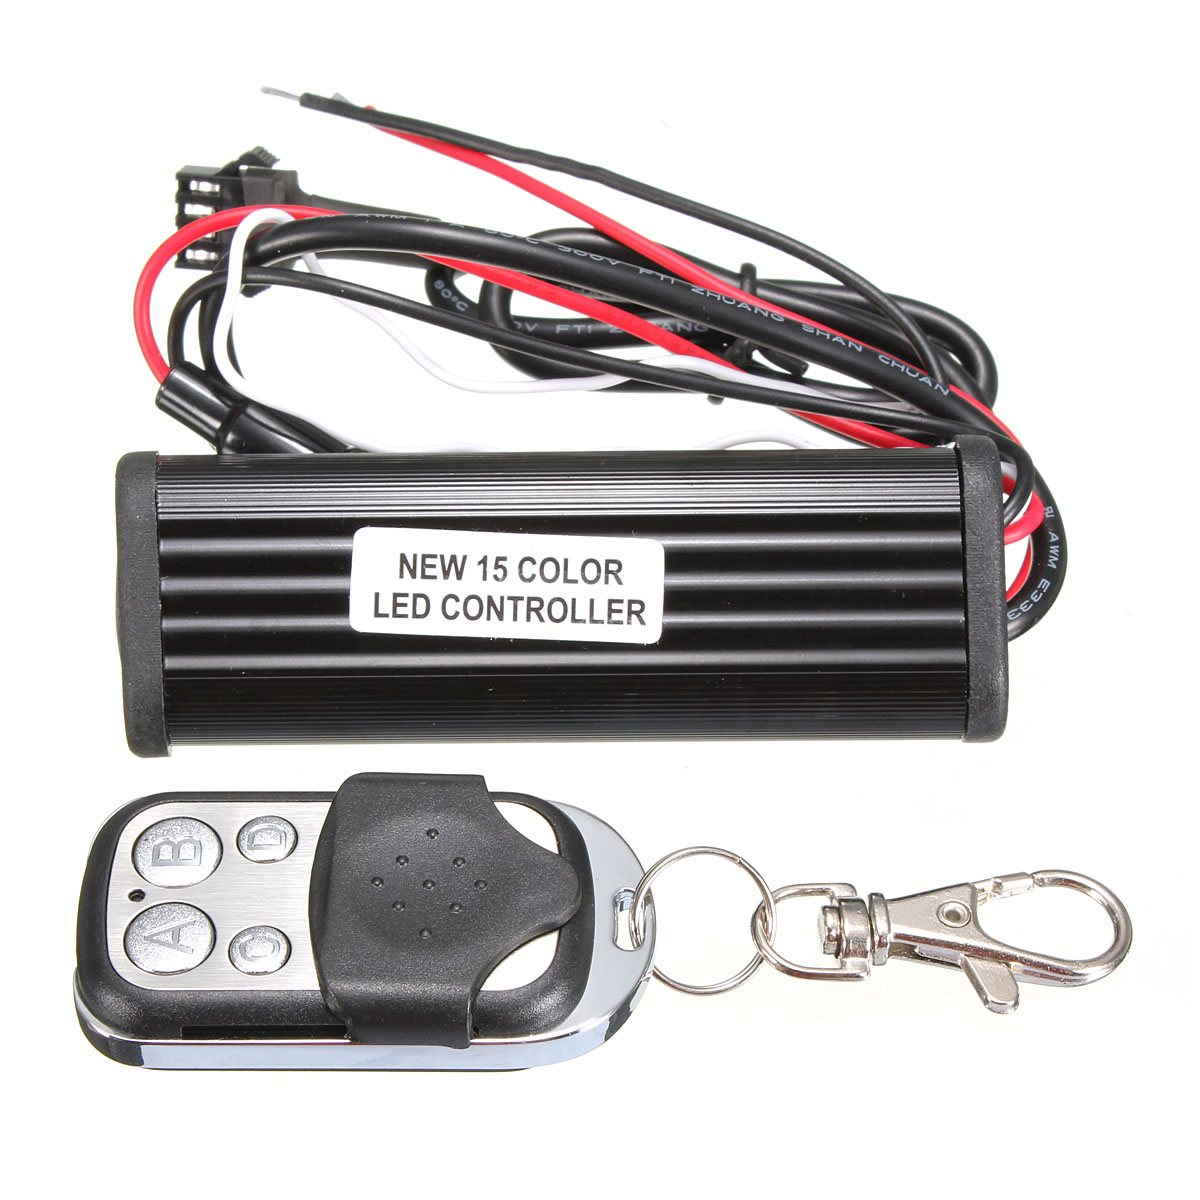 Light Controller For Motorcycles: 15 Color RGB Auto Car LED Controller Car LED Strobe Flash